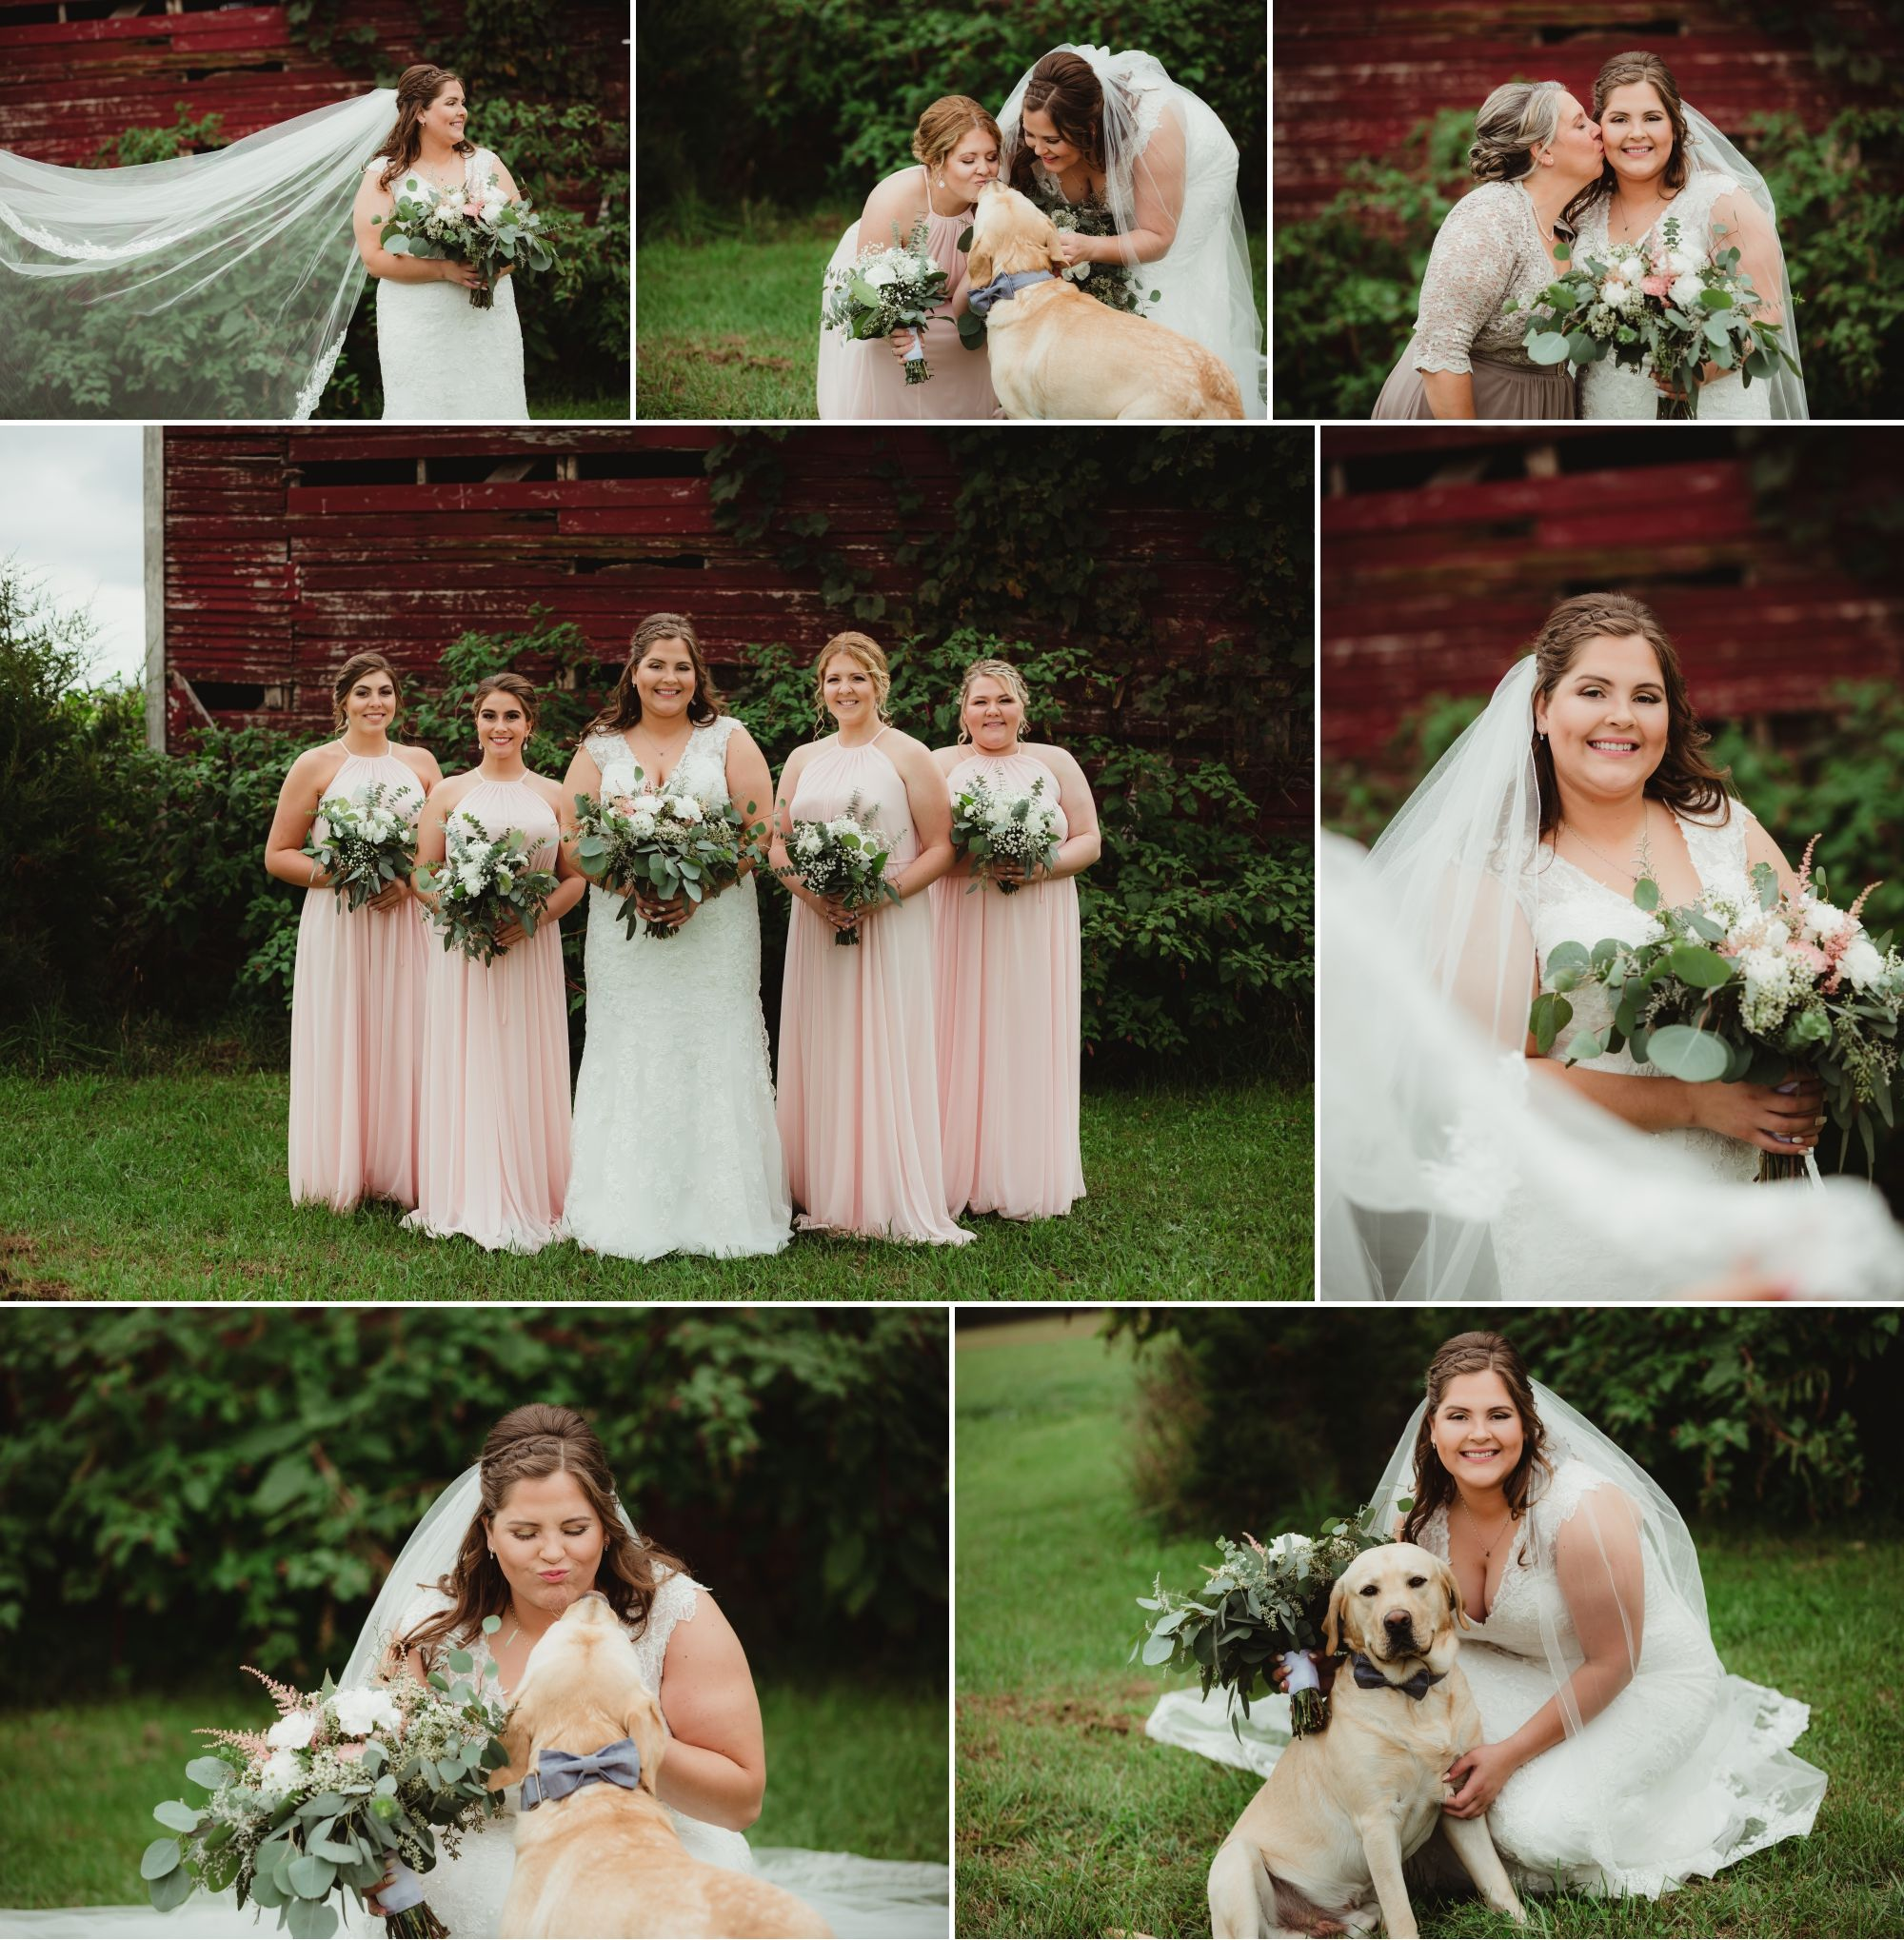 Collage of the bride and bridesmaids in front of an old barn. Bridesmaids wear light pink gowns, bride's dress is lace.